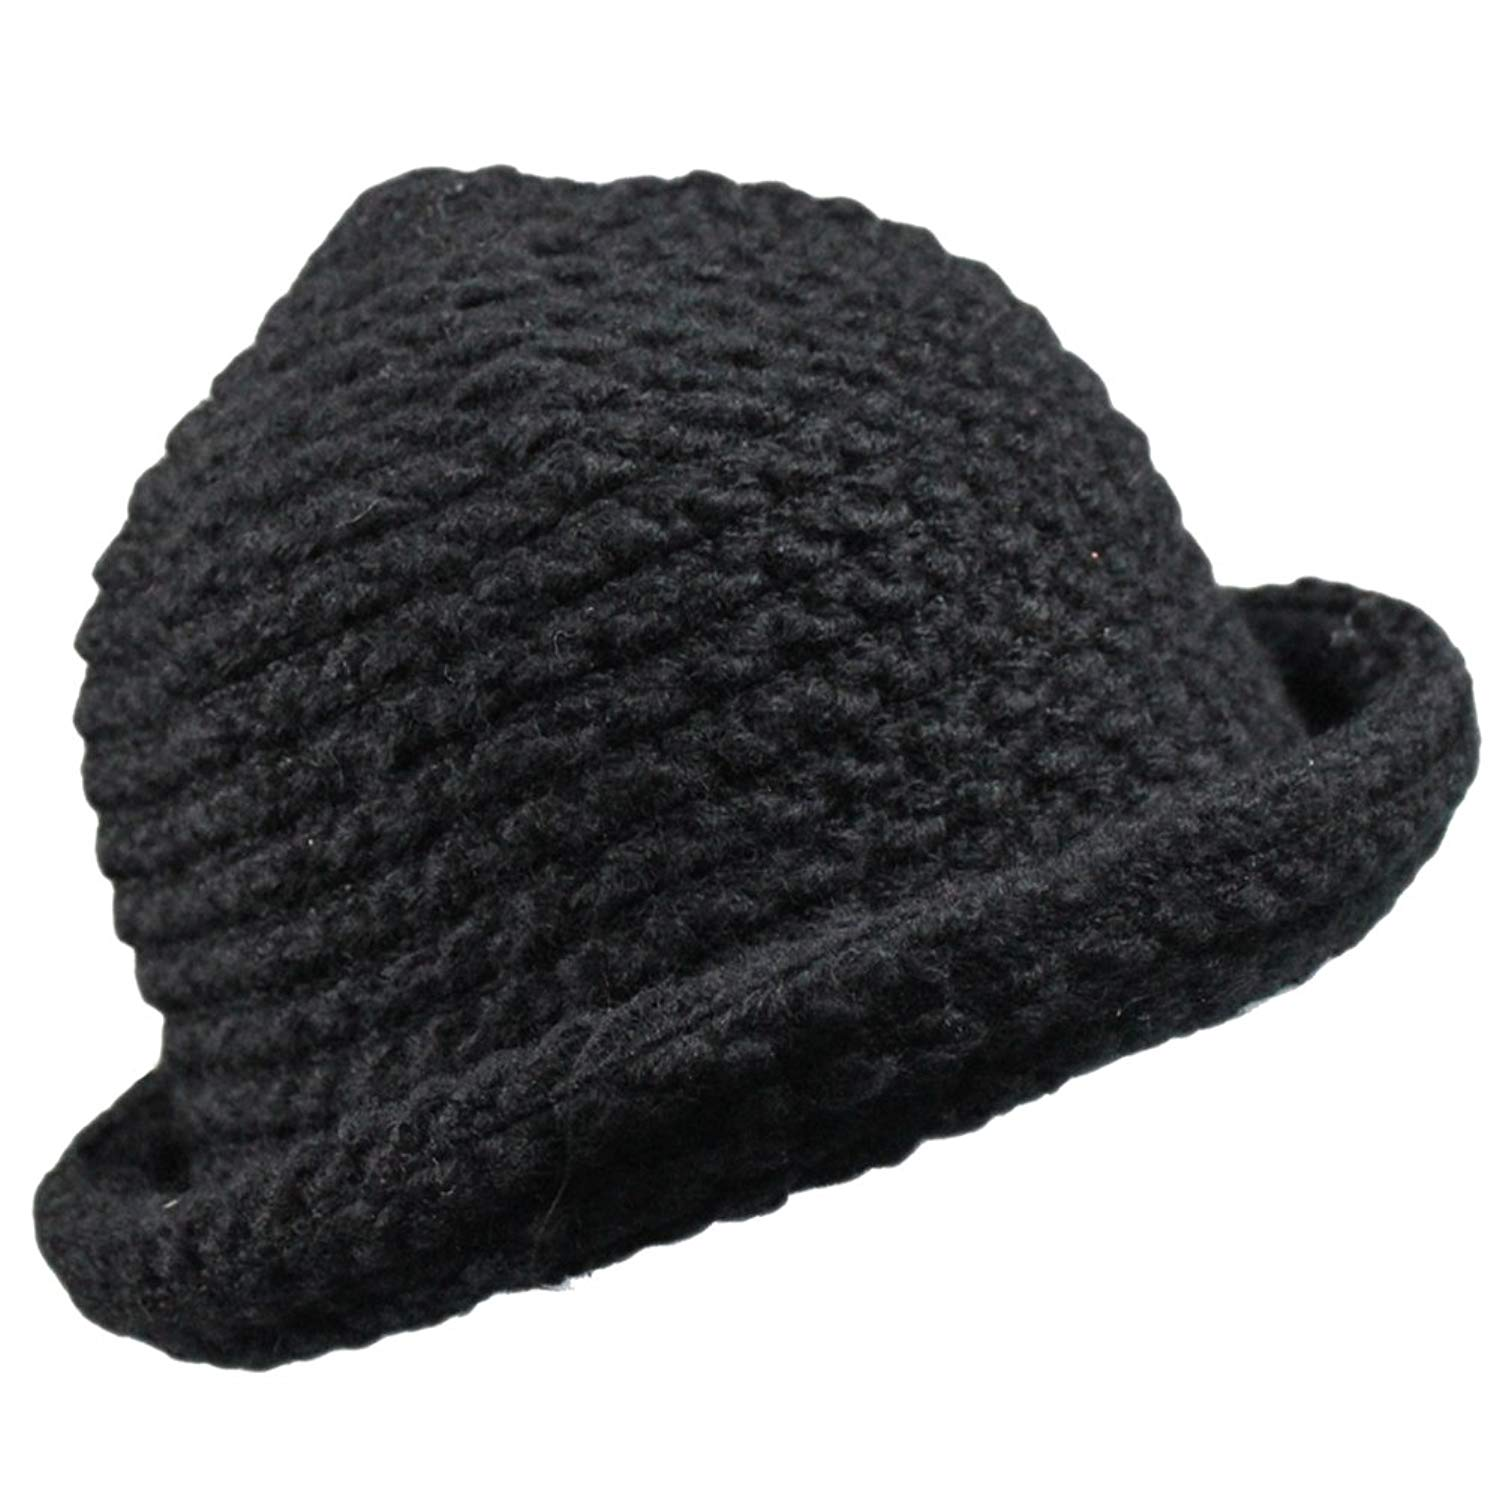 f9f3026f384 Get Quotations · Womens Winter Warm Knitted Fishmen Cloche Round Top Bucket  Hat Cap Roll-up Brim